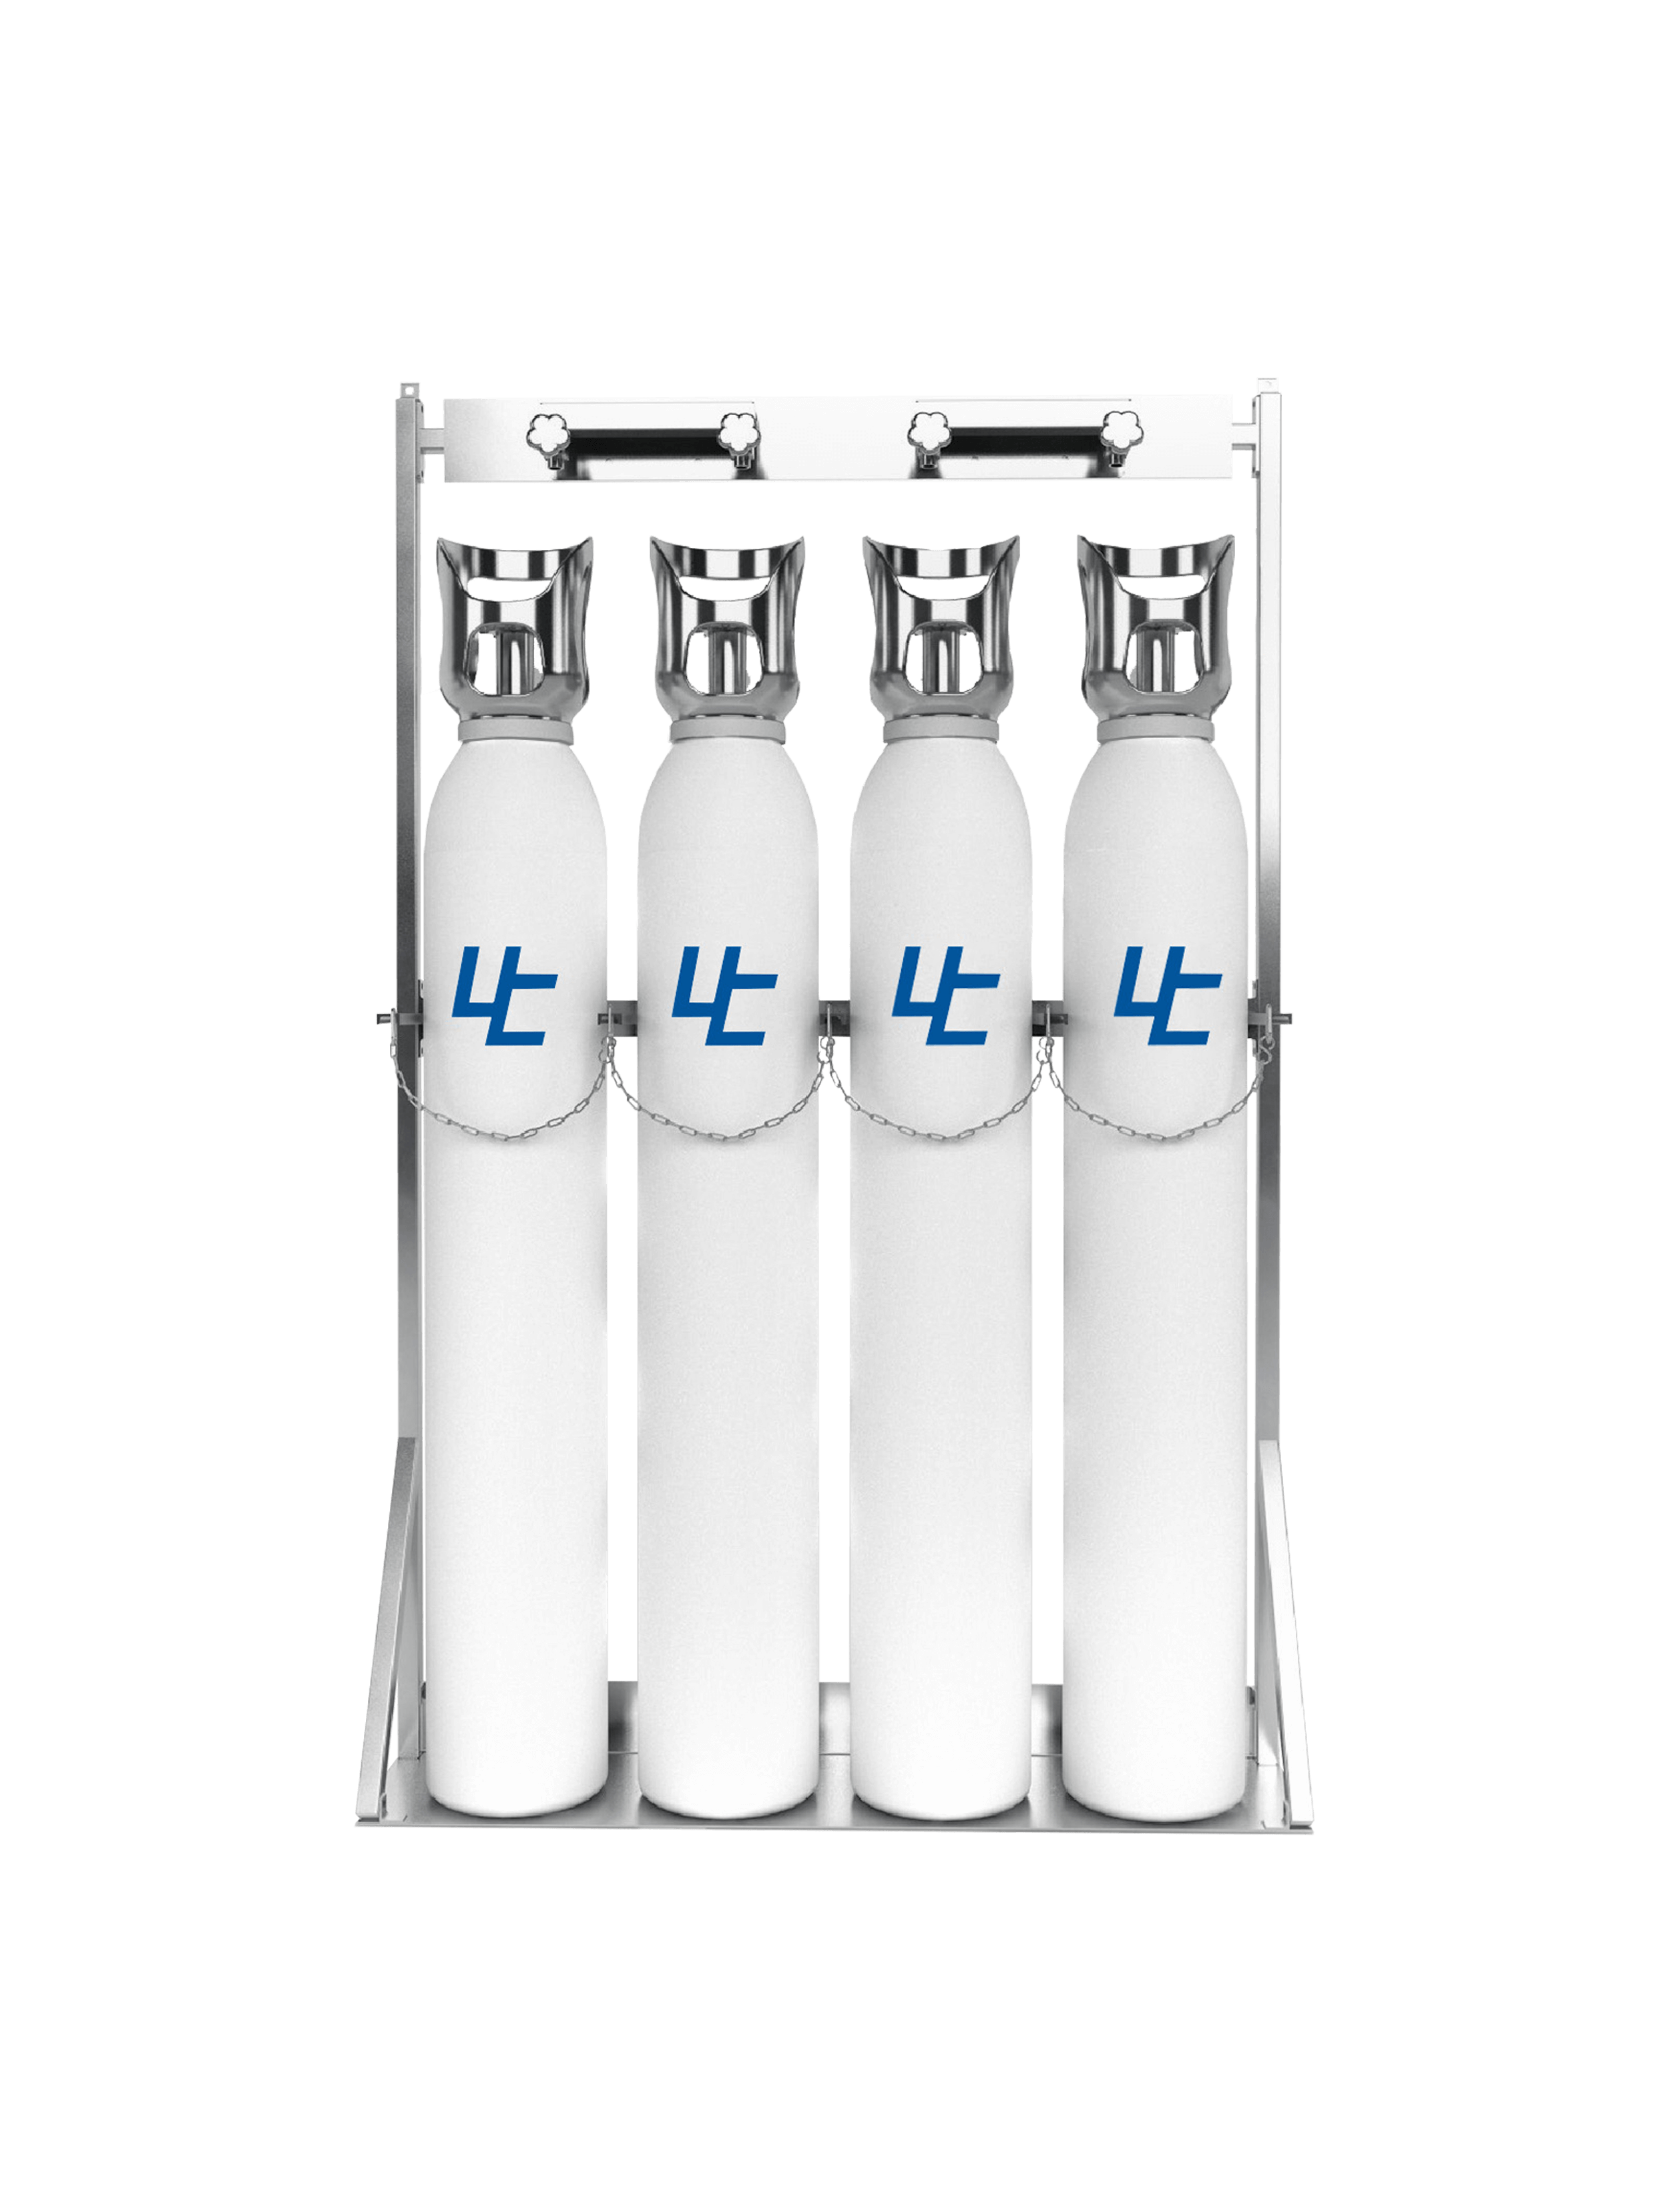 The most advanced fully automatic oxygen filling station in the gas phase. Equipped with the state-of-the-art high-pressure oxygen booster, ULTRACECO HP. High-quality Oxygen cylinders, Made in Europe, with TPED certificate can be provided together with the filling system.